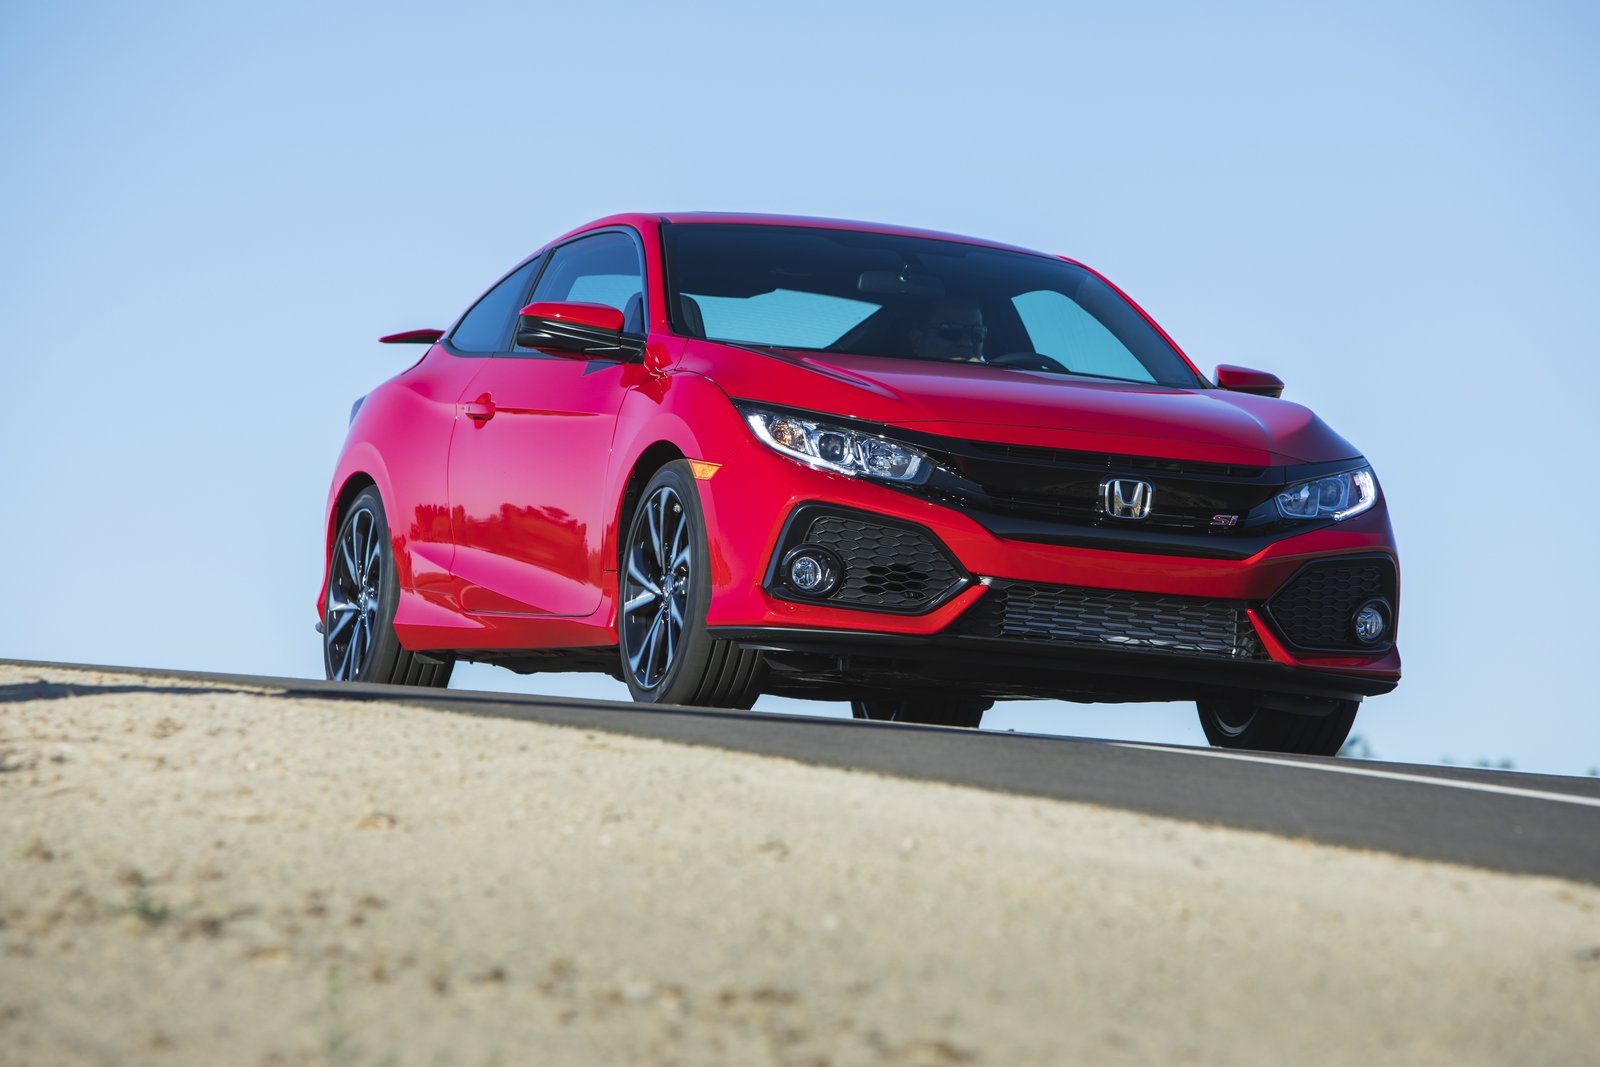 Engineering Explained Finds Turbo 2017 Honda Civic Si Pretty Good, But Not Perfect